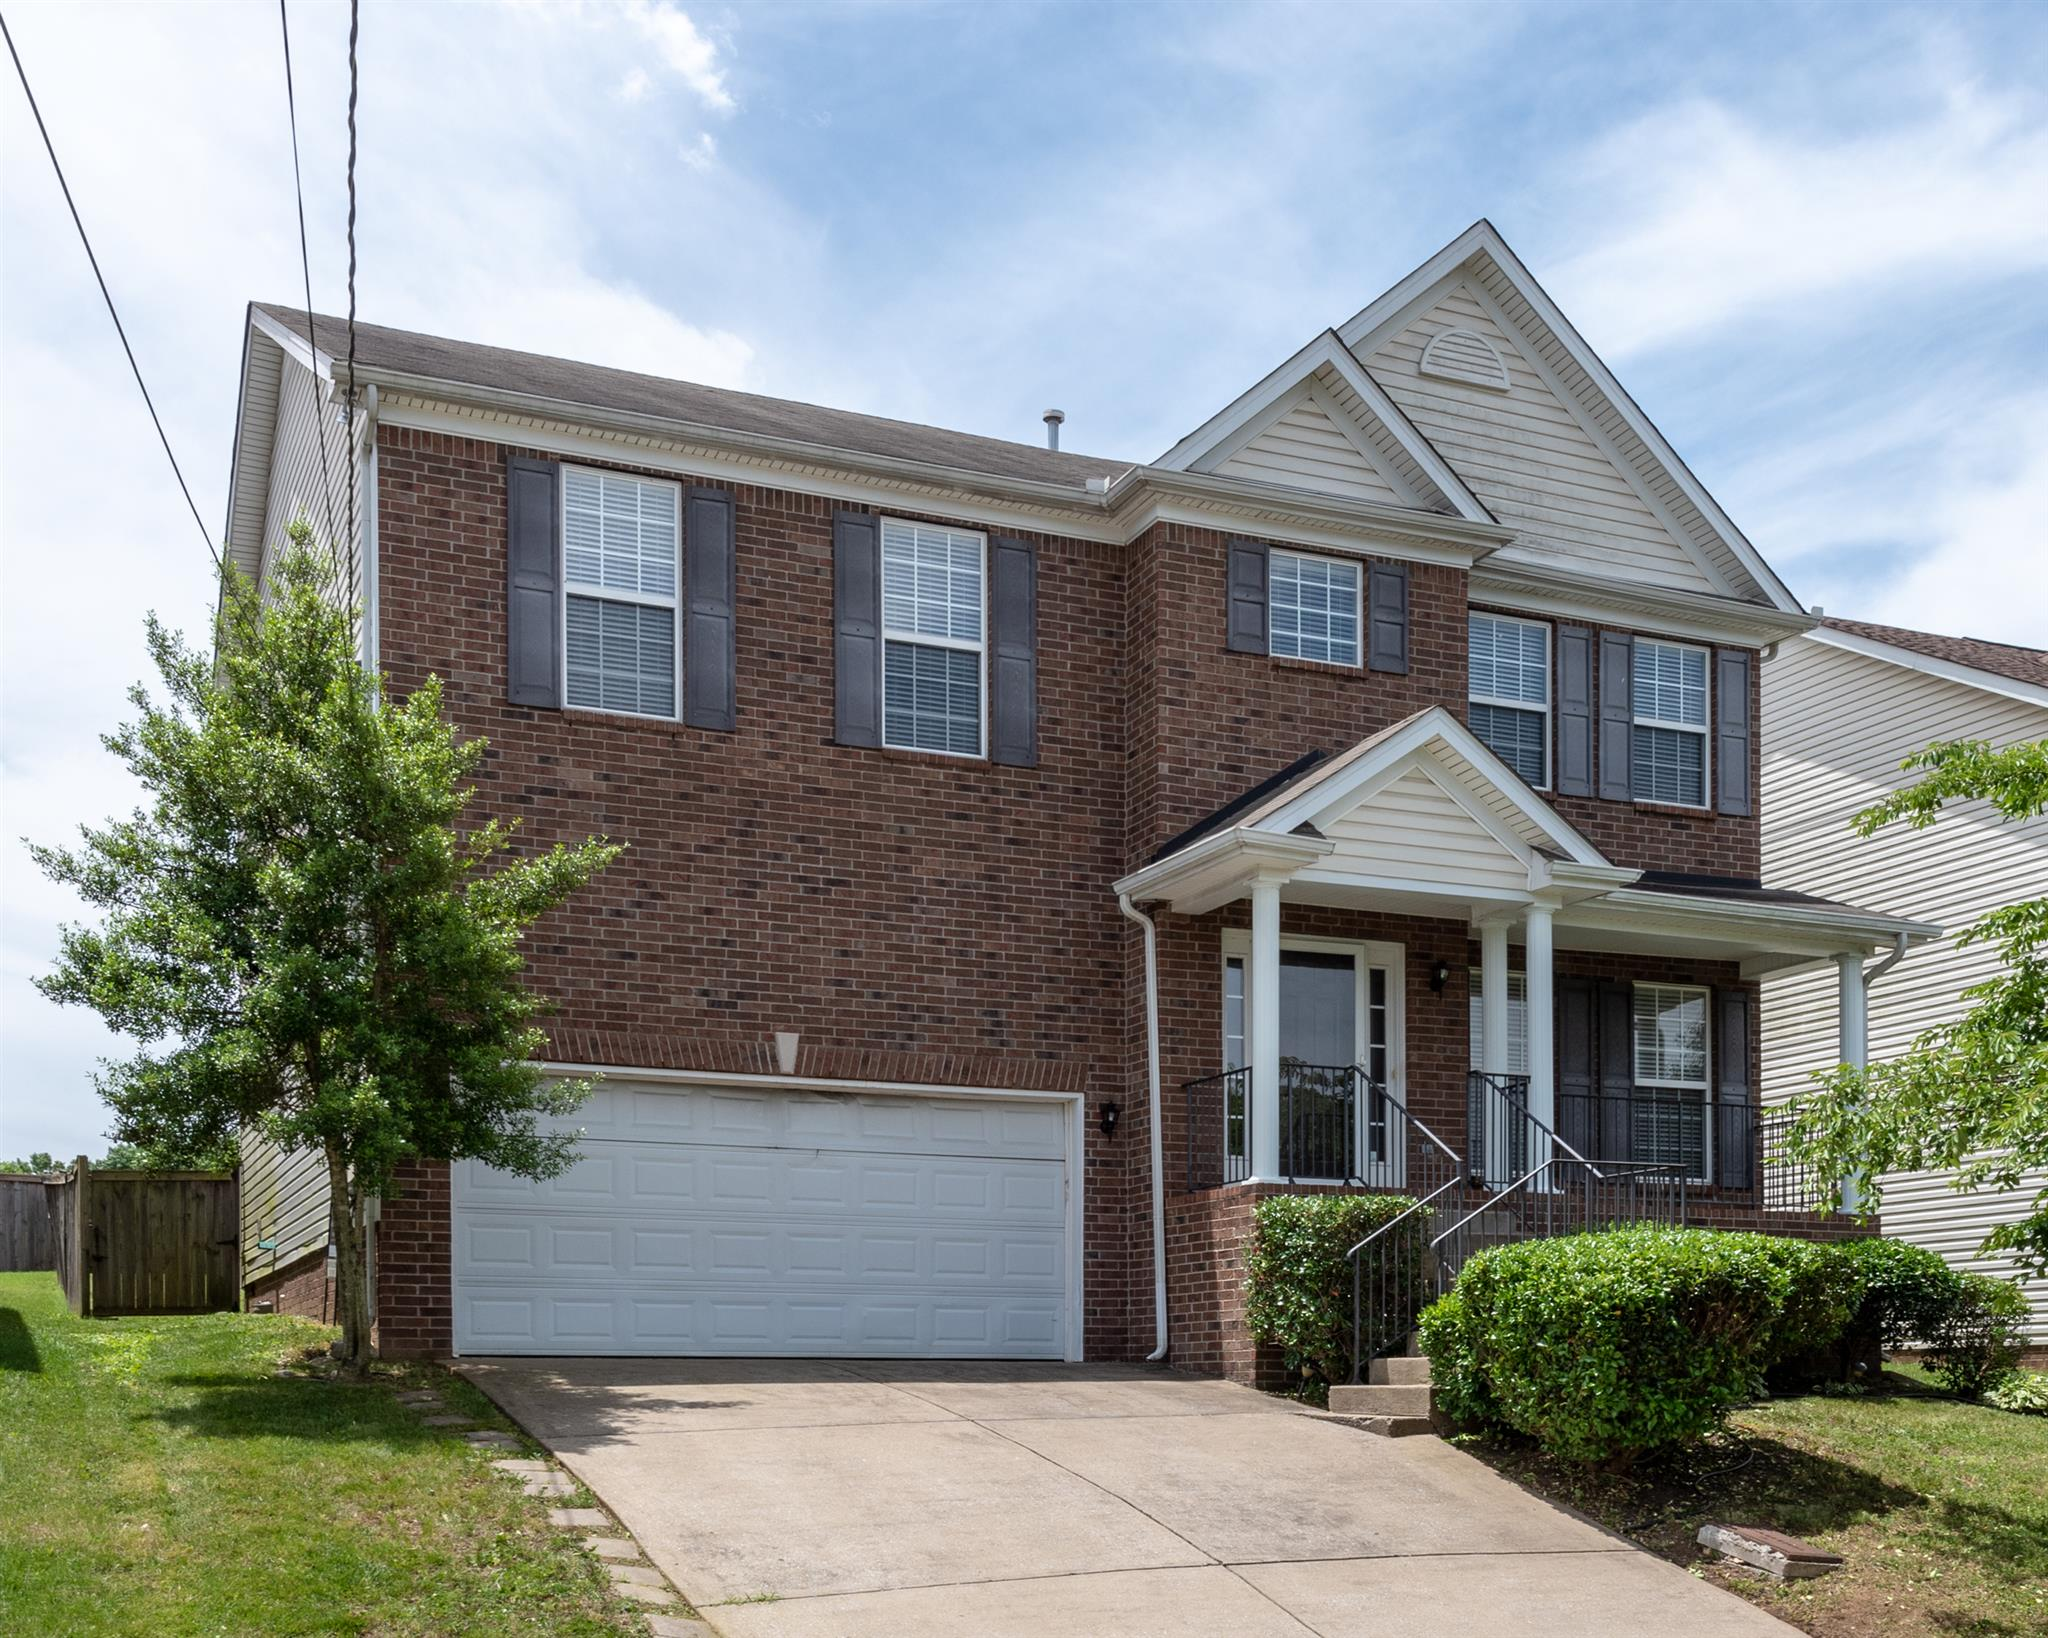 1305 Blairfield Dr, Antioch, TN 37013 - Antioch, TN real estate listing